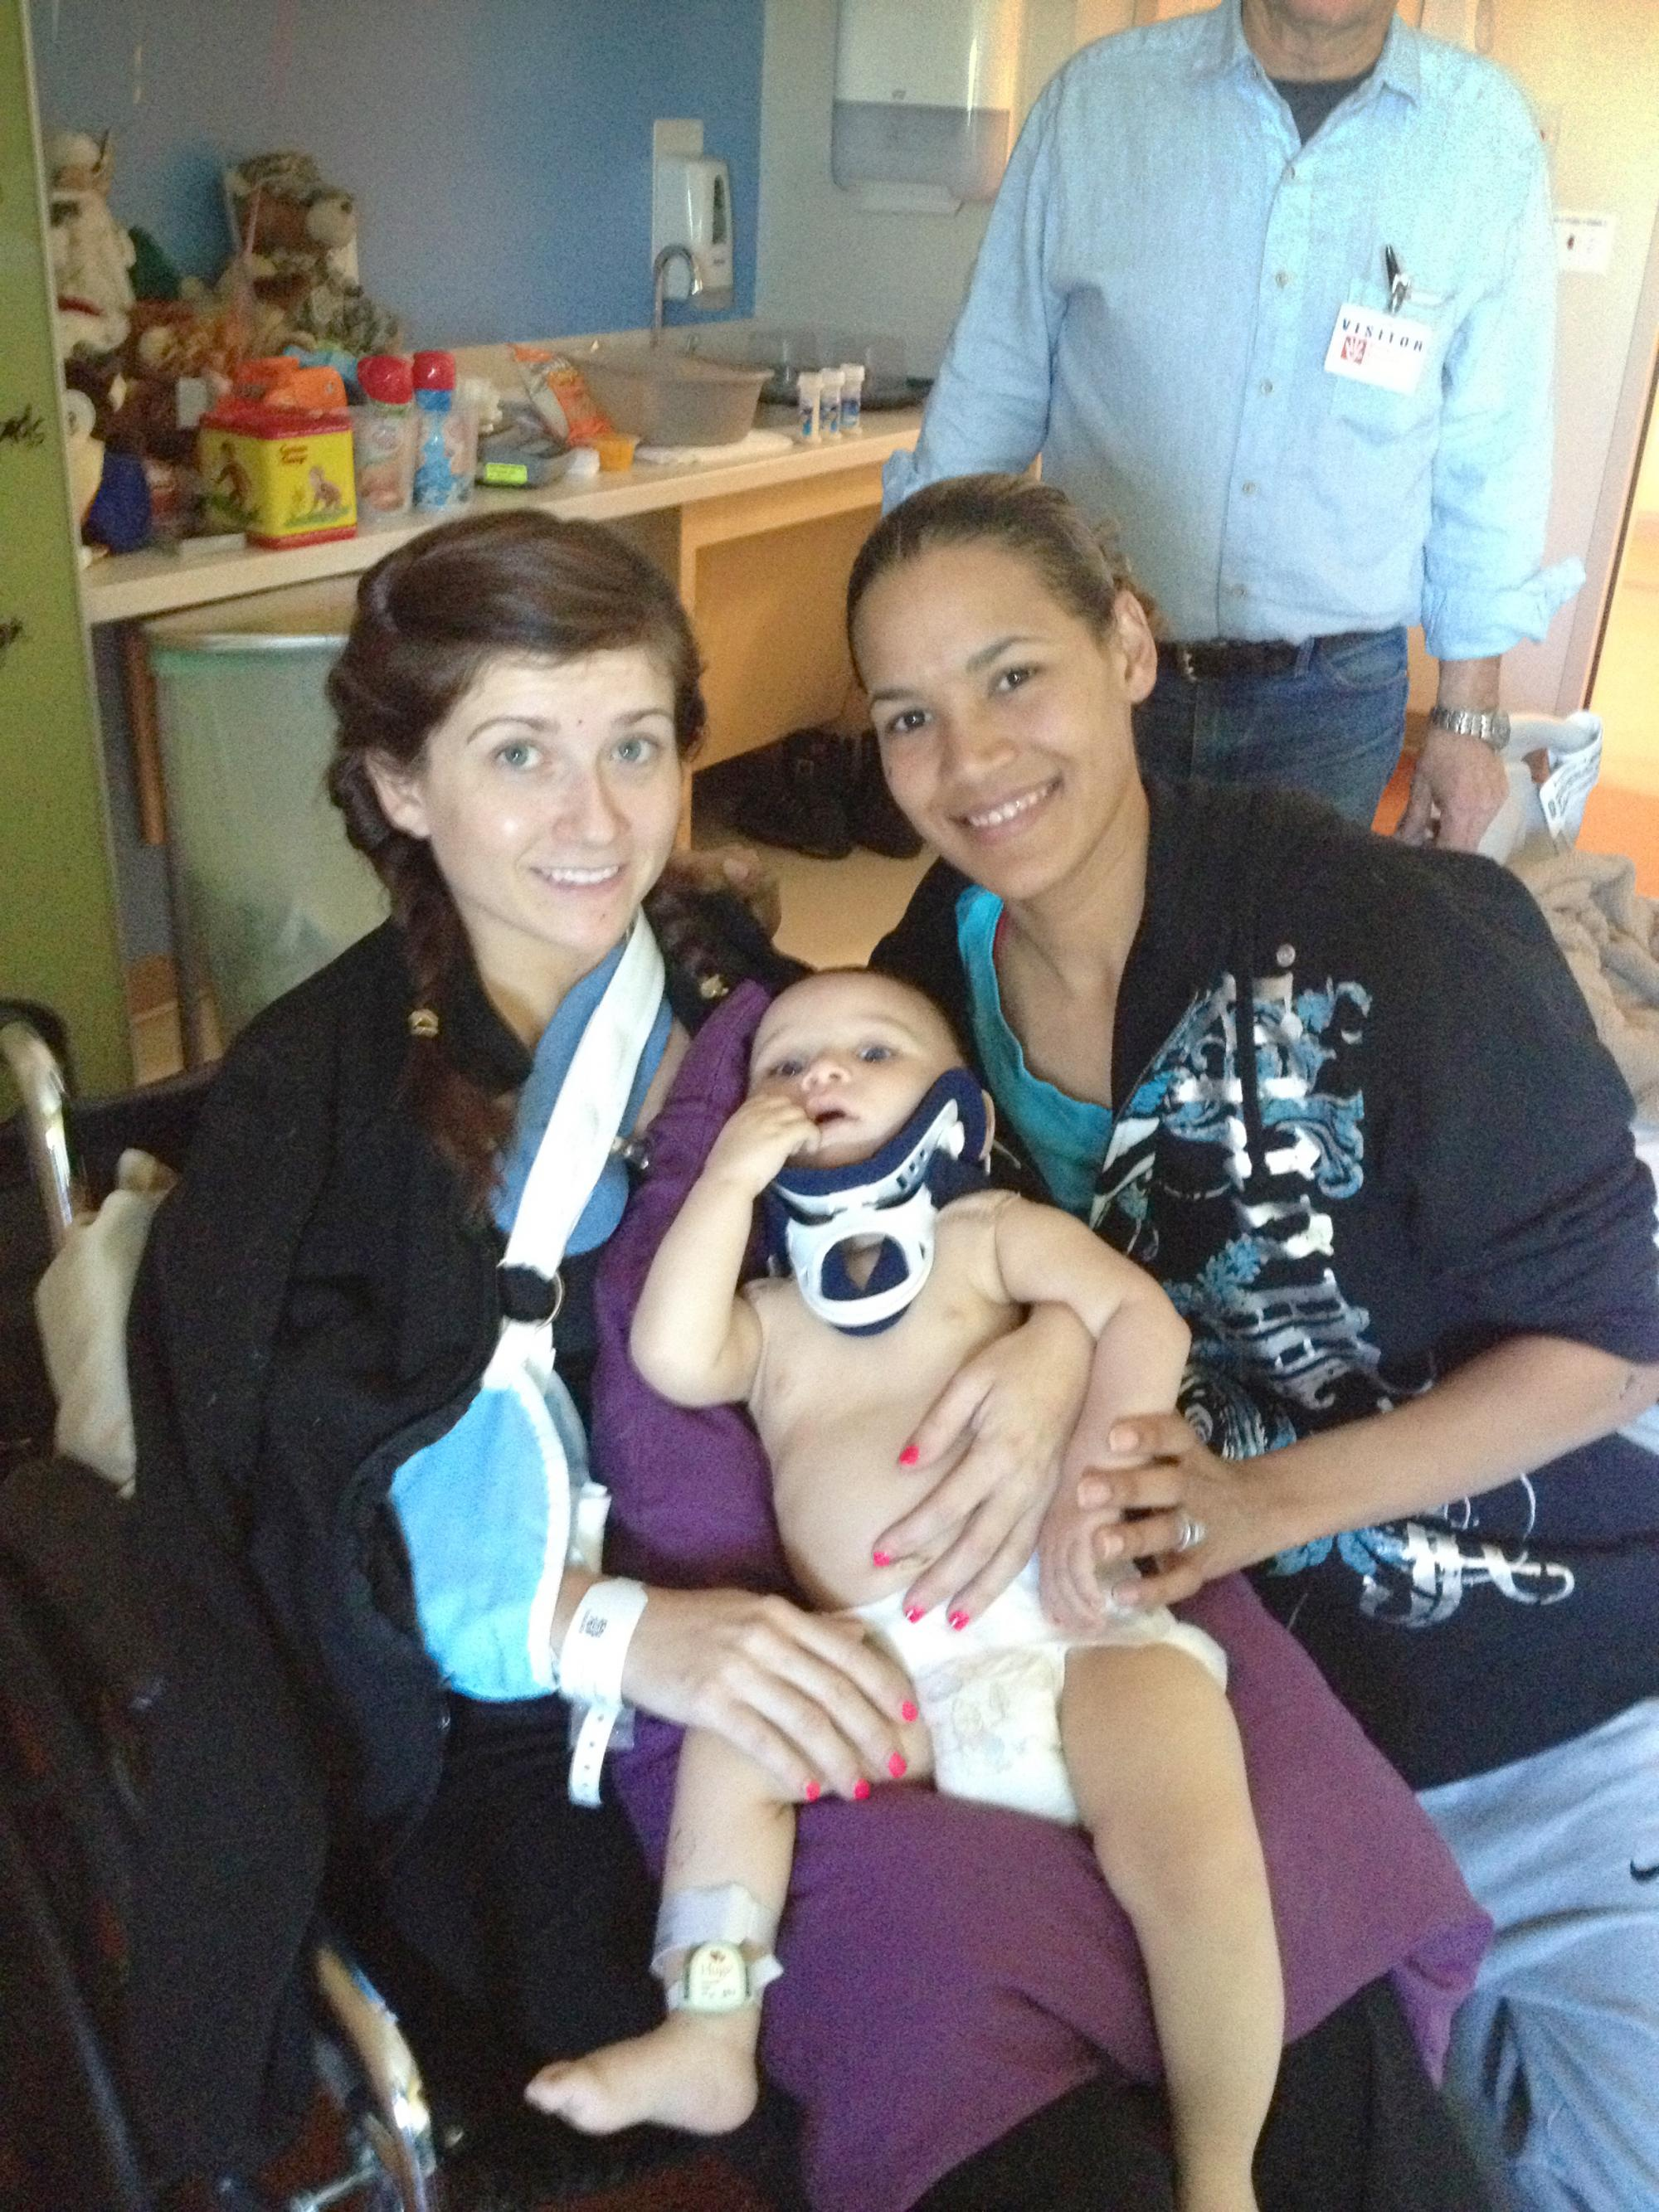 Matthews , her infant son and her sister-in-law Amy Rodriguez meeting again, months after the crash.